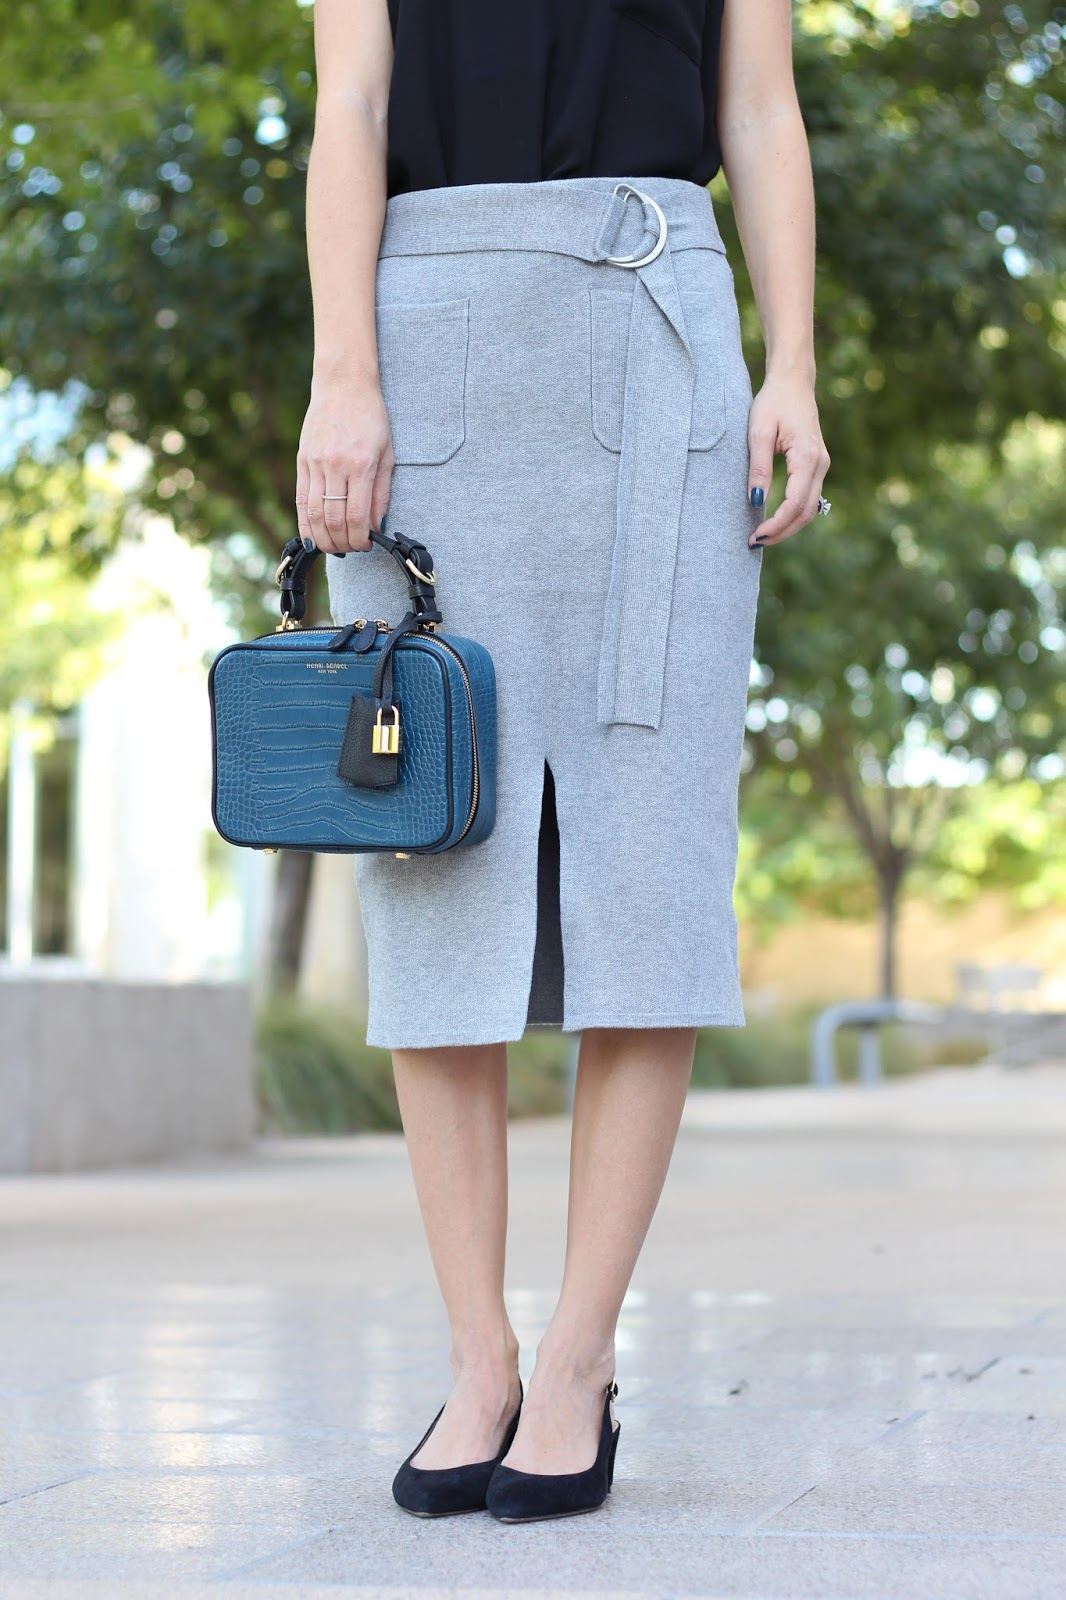 grey skirt - how to style a knit skirt - pencil skirt